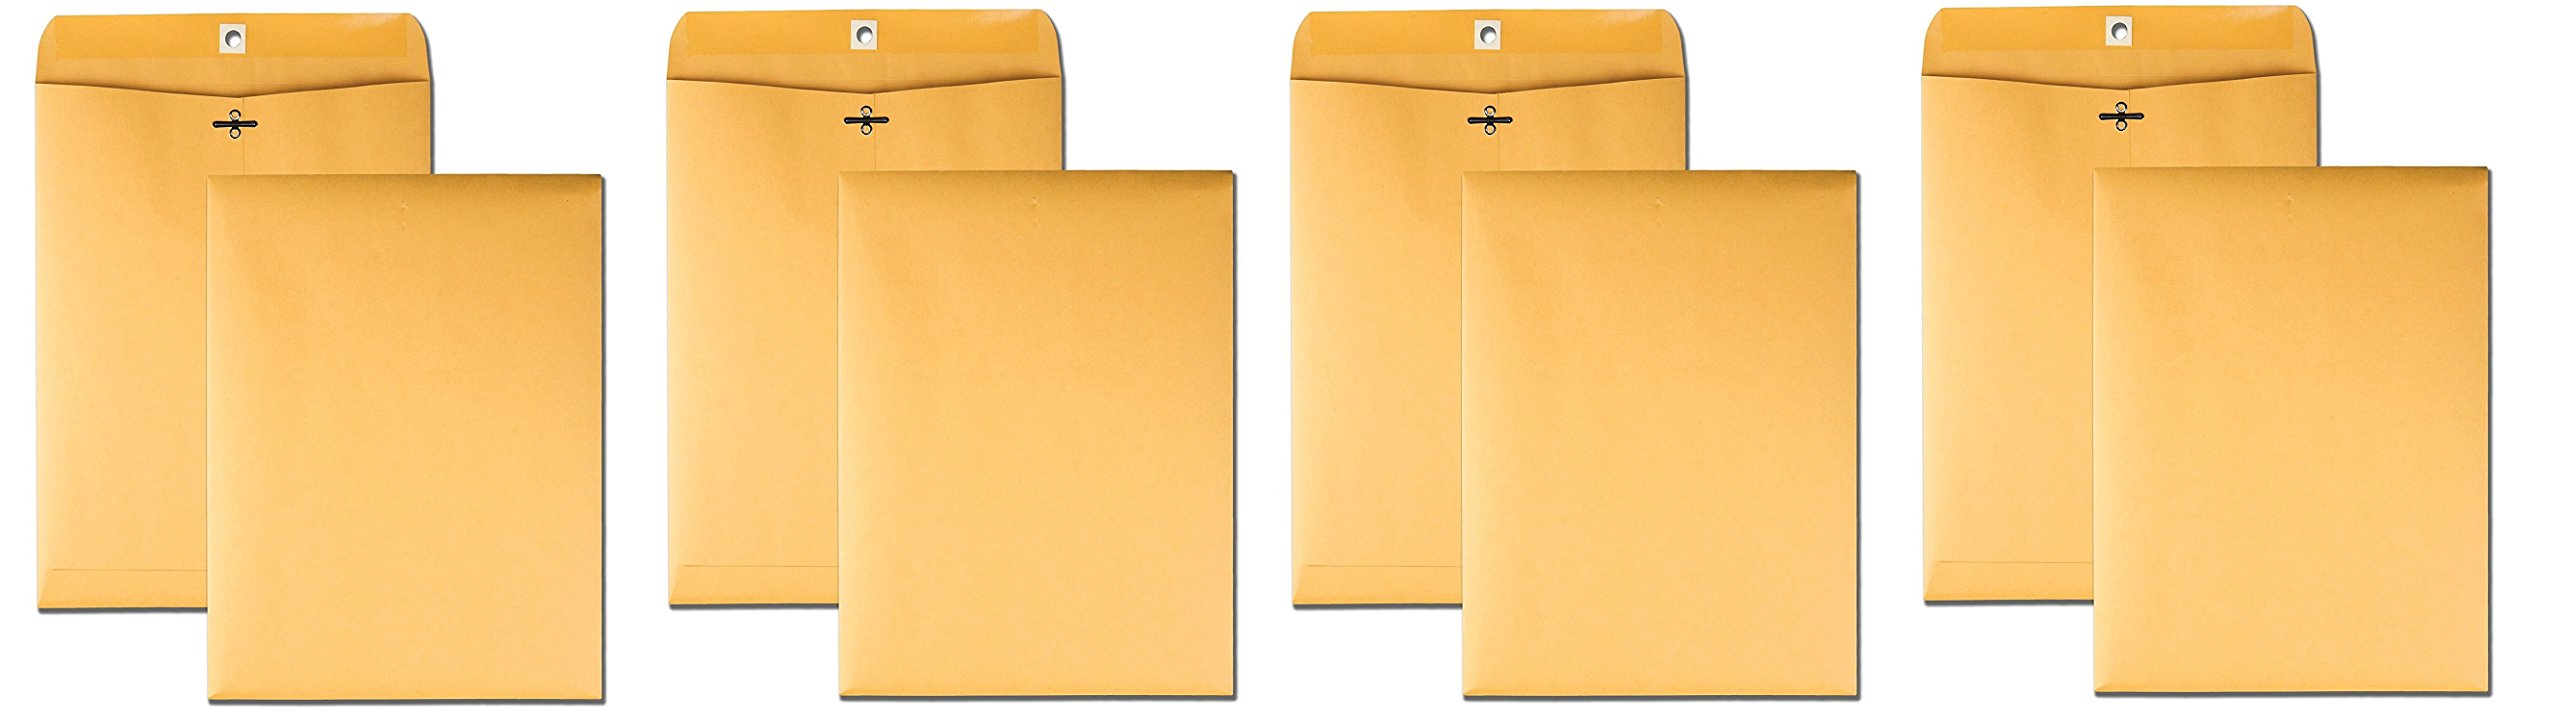 Quality Park 9 x 12 Clasp Envelopes with Deeply Gummed Flaps, Great for Filing, Storing or Mailing Documents, 28 lb Brown Kraft, 100 per Box (37890) (1500 Envelopes)